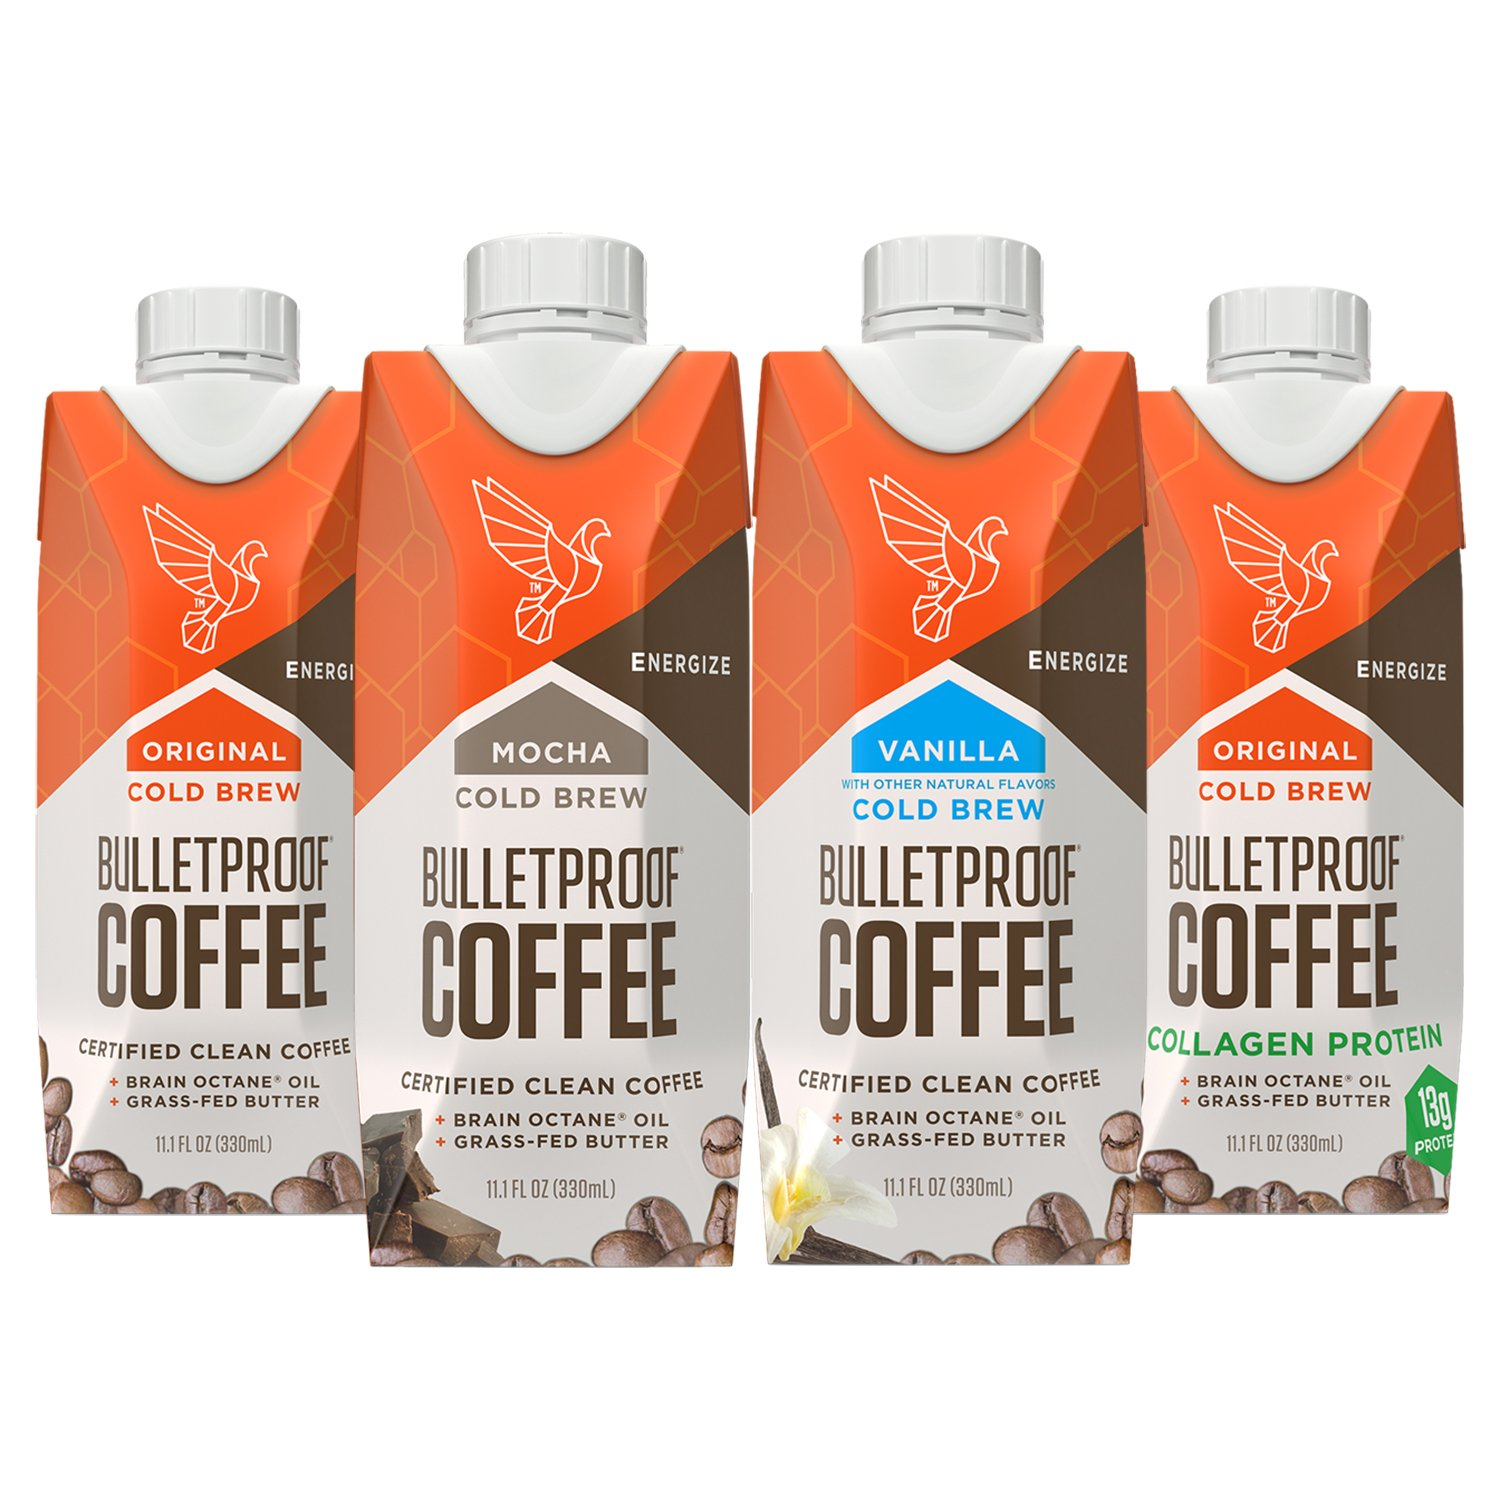 Bulletproof Coffee Cold Brew Ready to Drink Sampler- Ketogentic Diet, Sugar-Free, Includes Grass-Fed Butter and Brain Octane Oil, Flavors: Original, Mocha, Vanilla, and Original Plus Collagen (4 Pack)